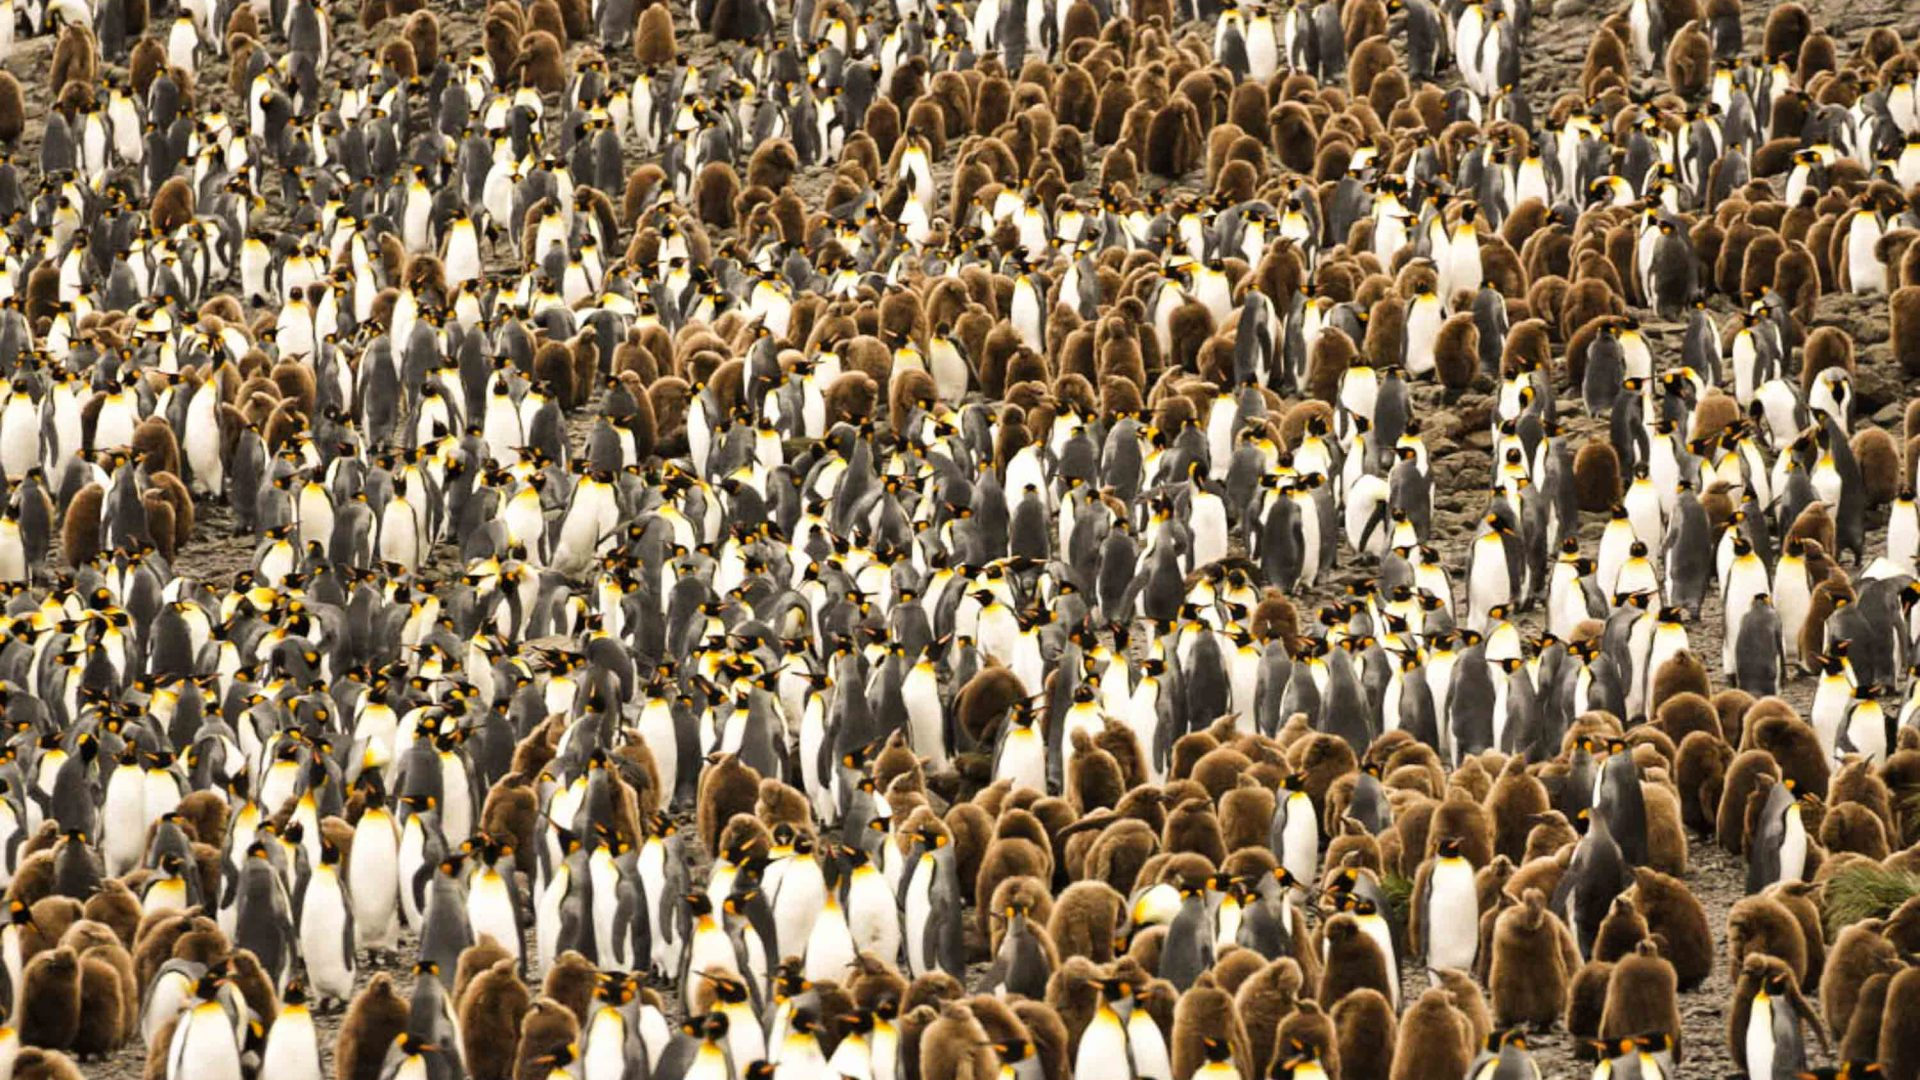 Springtime in South Georgia is breeding season, and heralds the gathering of the largest concentration of seabirds on the planet.